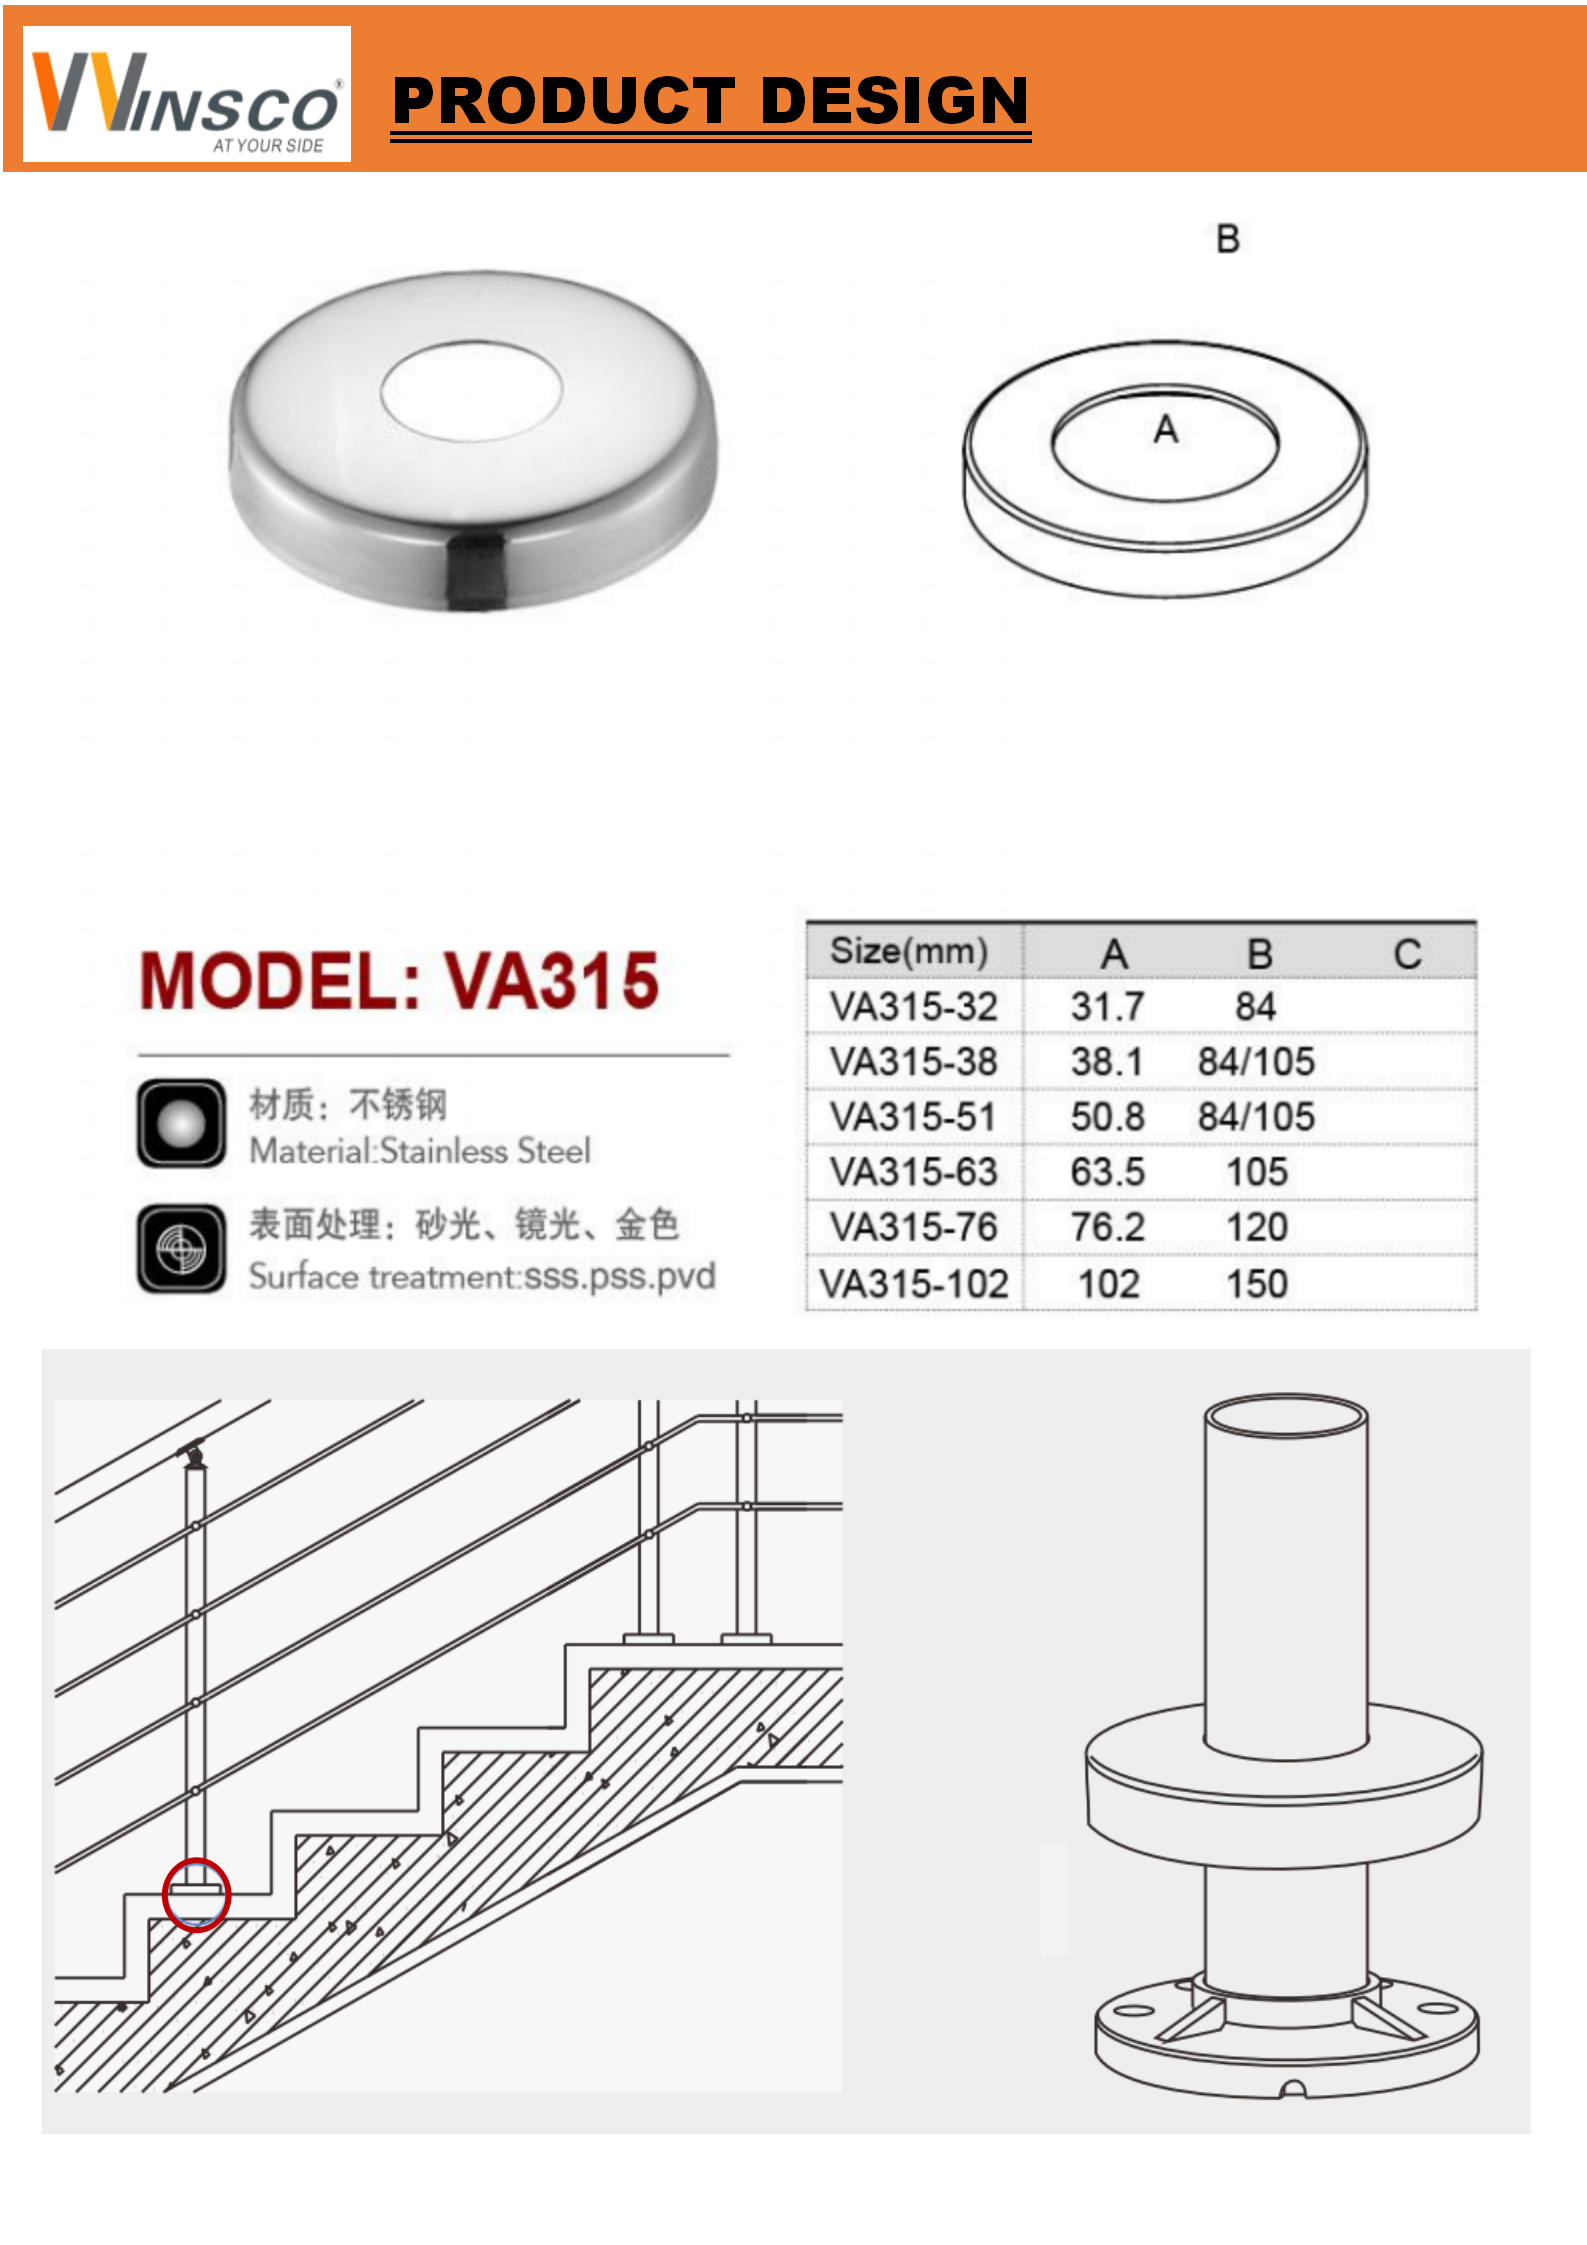 Wholesale 201 304 316l ss pipe accessories Decorative flooring mounted Stainless Steel flange Base Cover for Round Posts railing